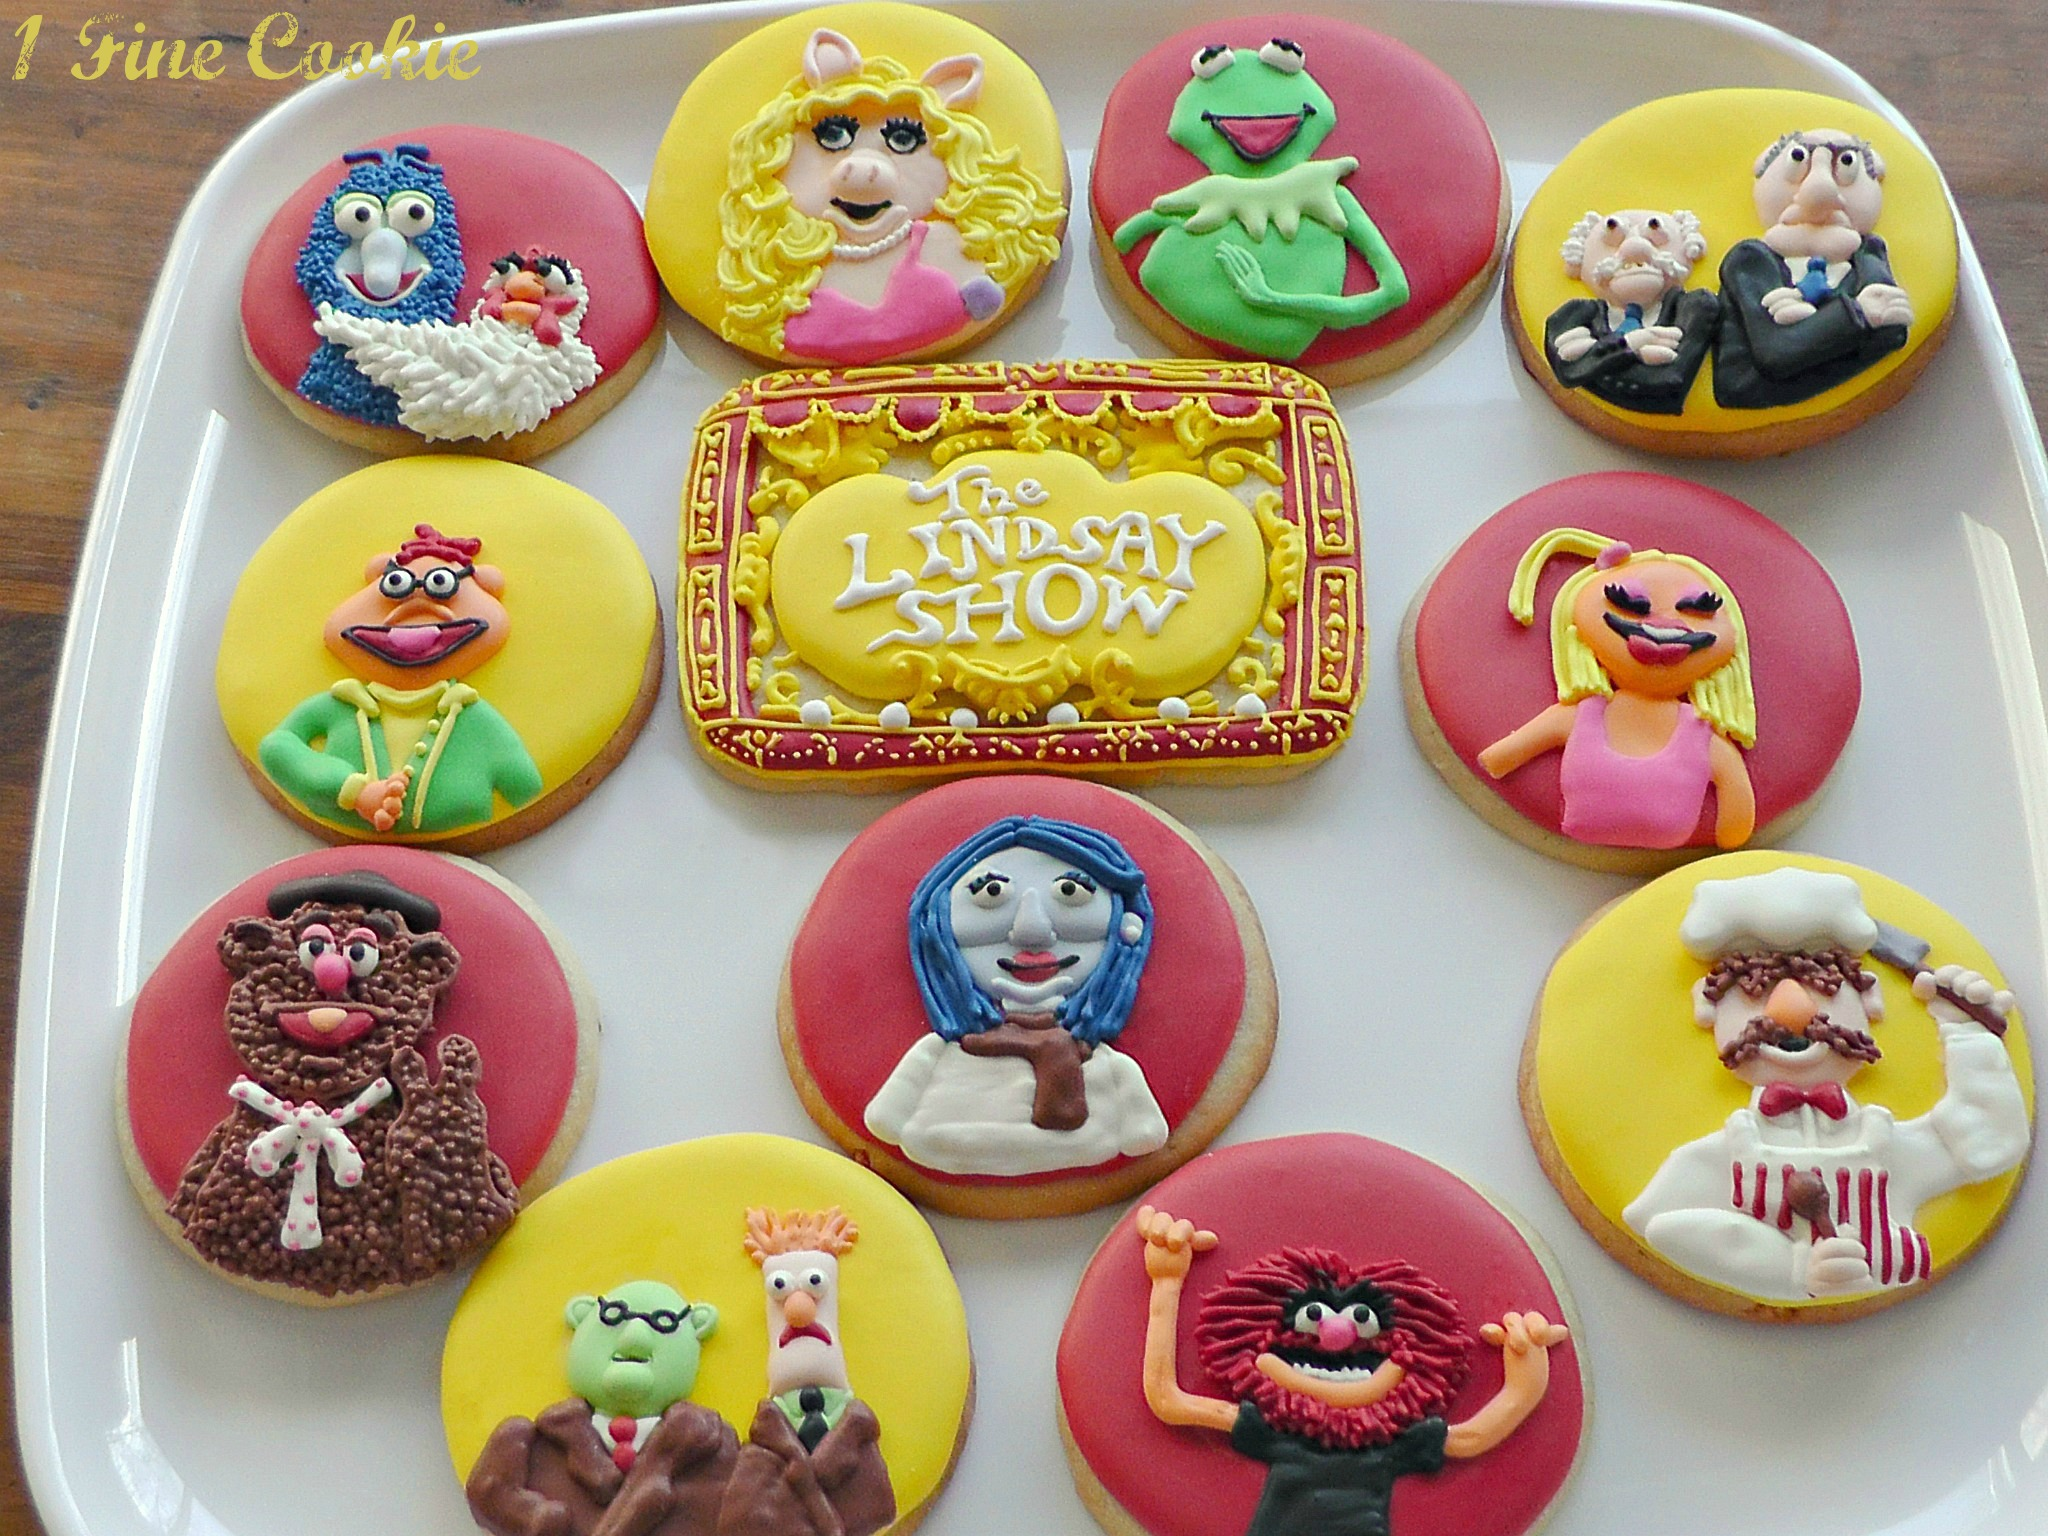 Project The Muppet Show  - 1 Fine Cookie